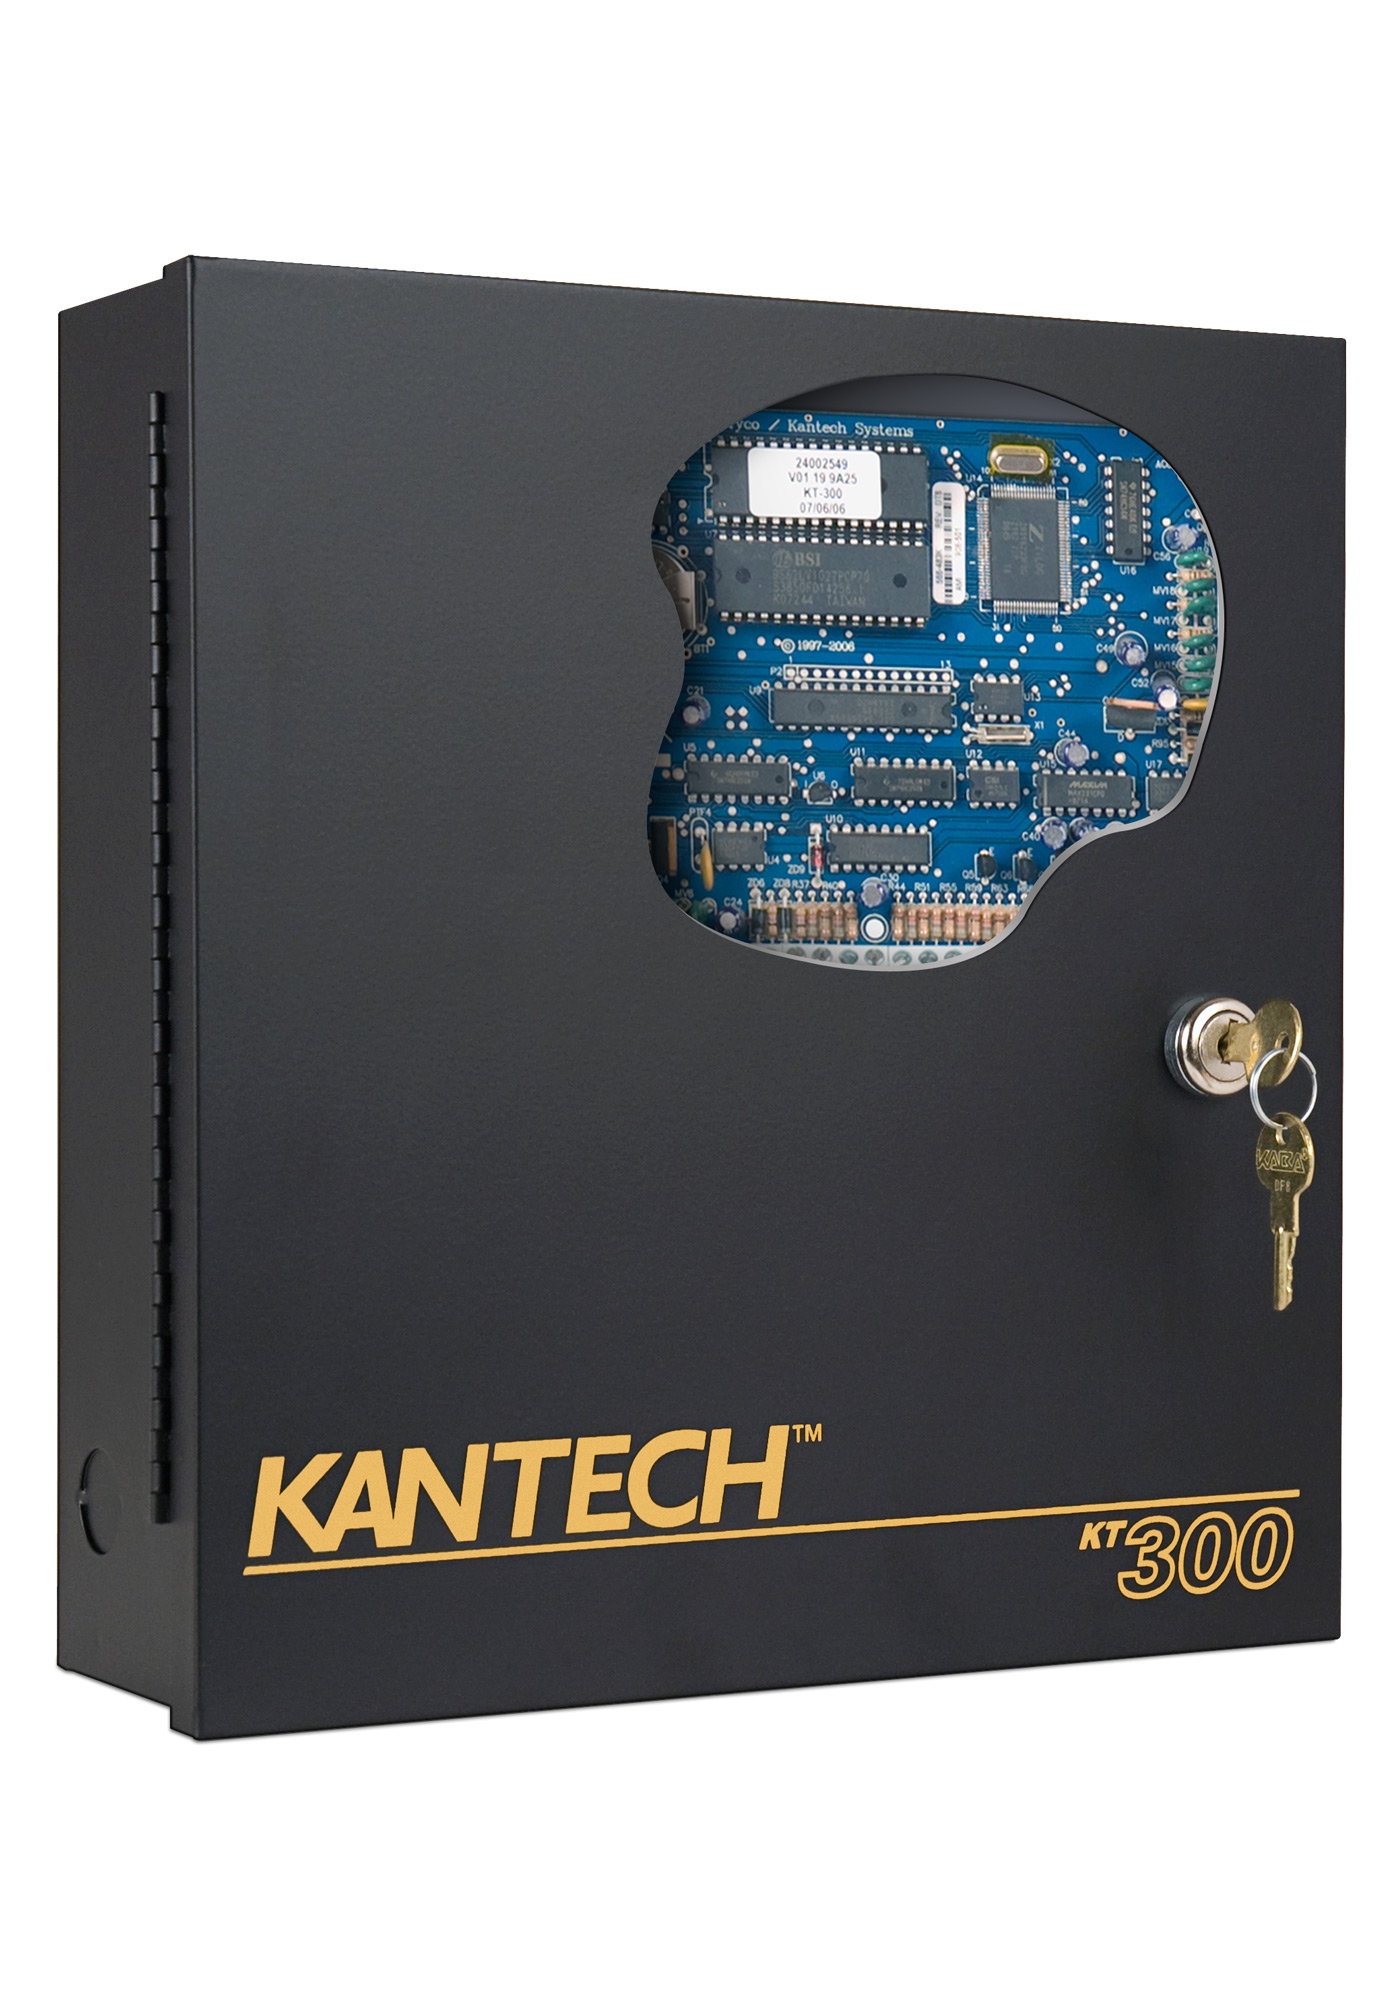 kantech residential card access